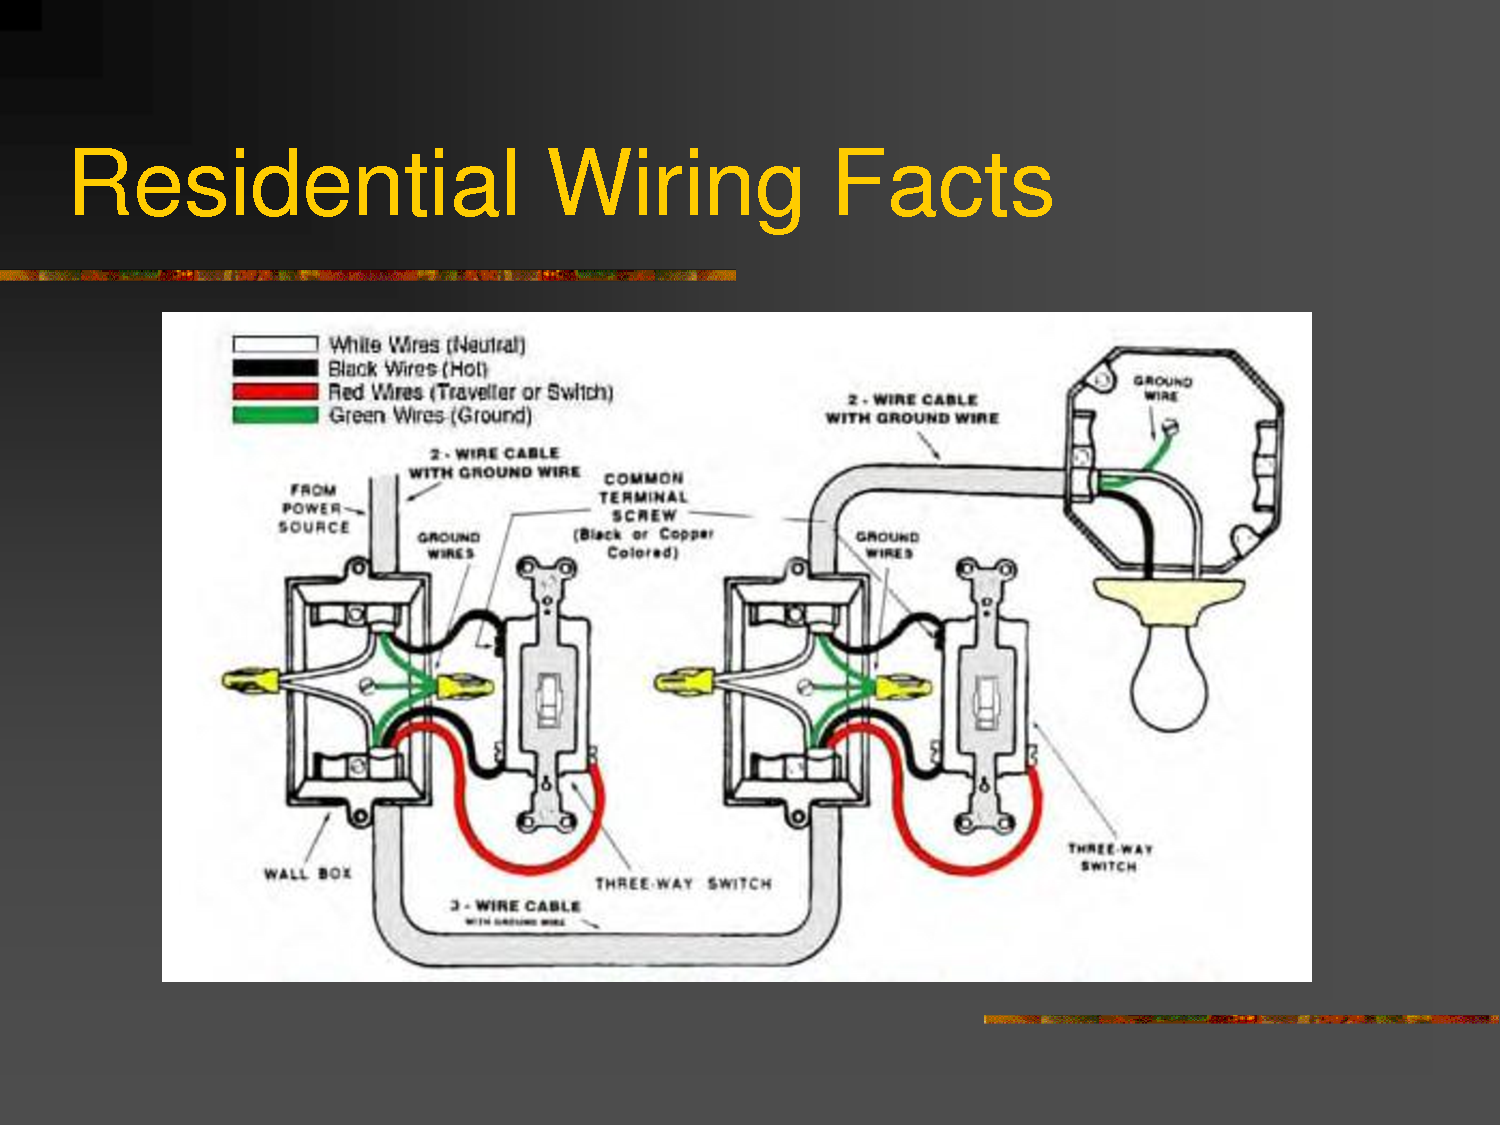 Residential Electrical Wiring Diagram Symbols Electrical Wiring